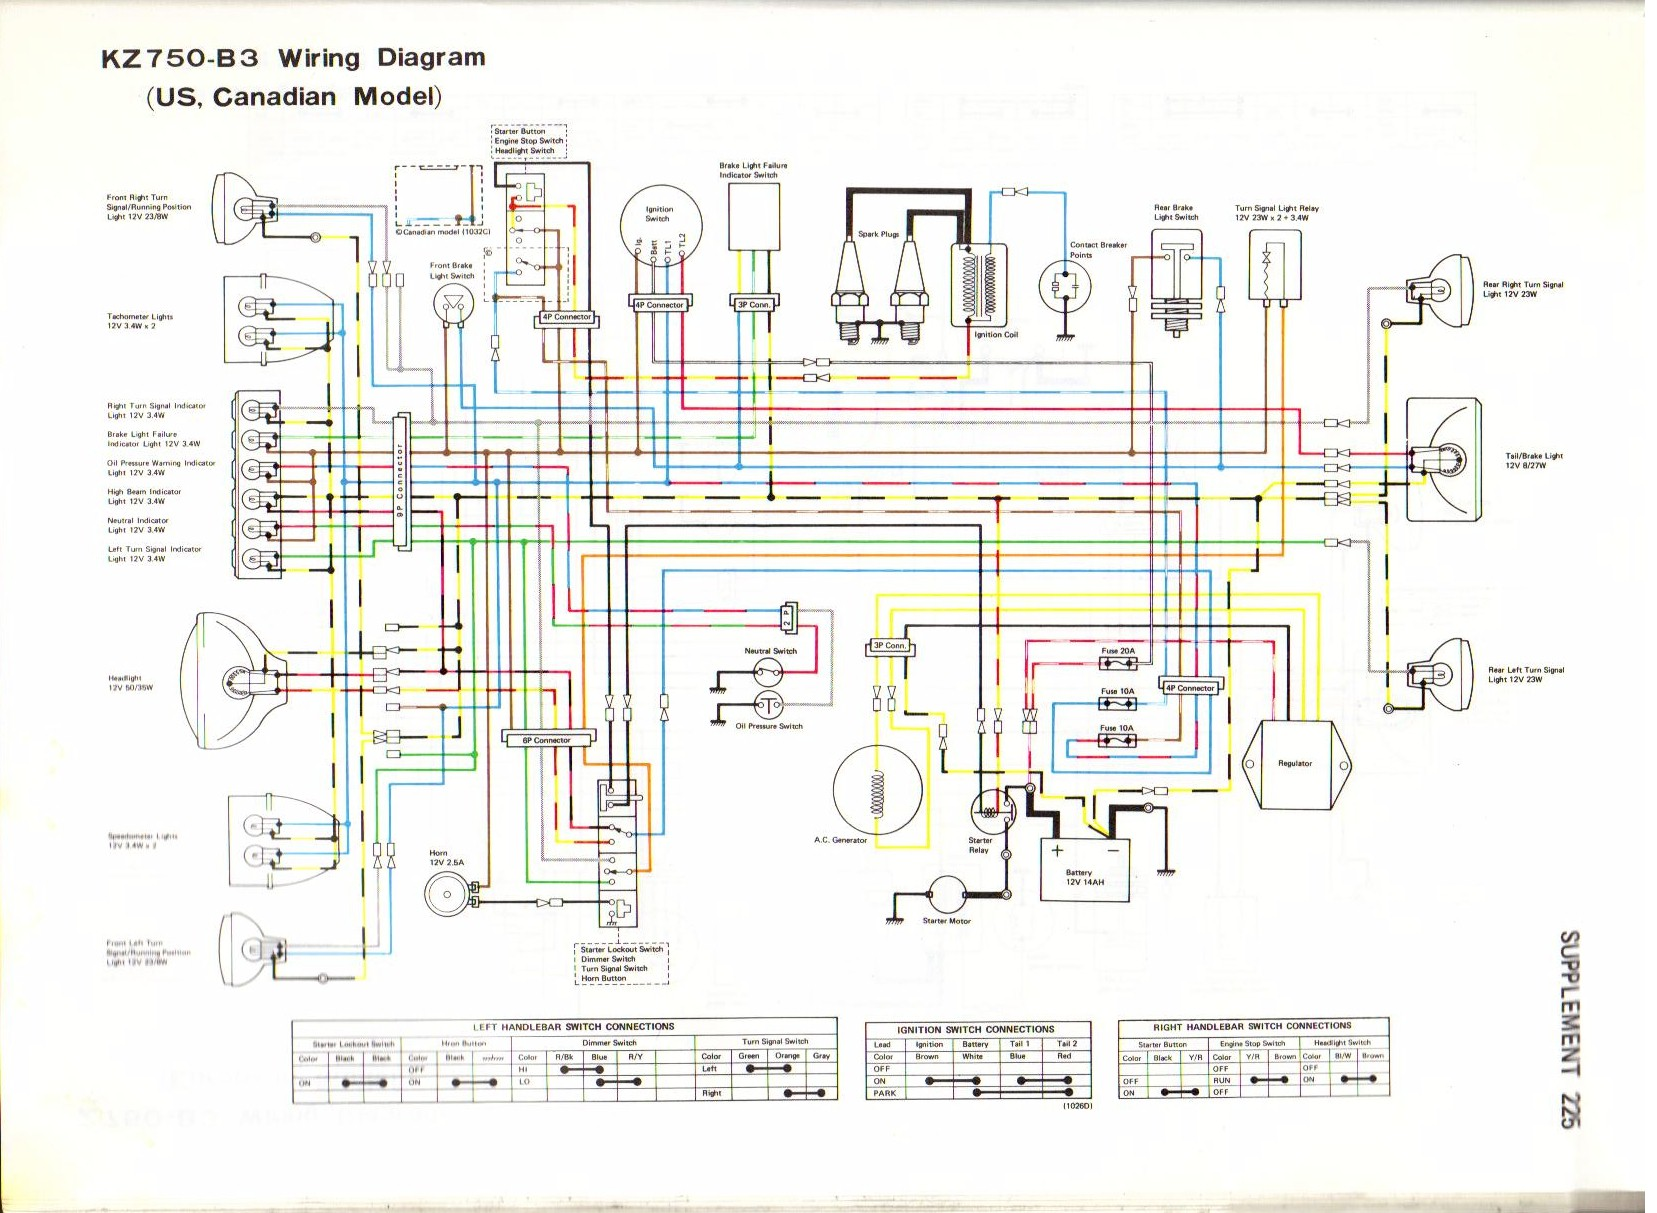 1981 Kawasaki Wiring Diagram Manual Guide Schematics Kz750 Automotive U2022 Rh Lizcullen Com 440 Ltd